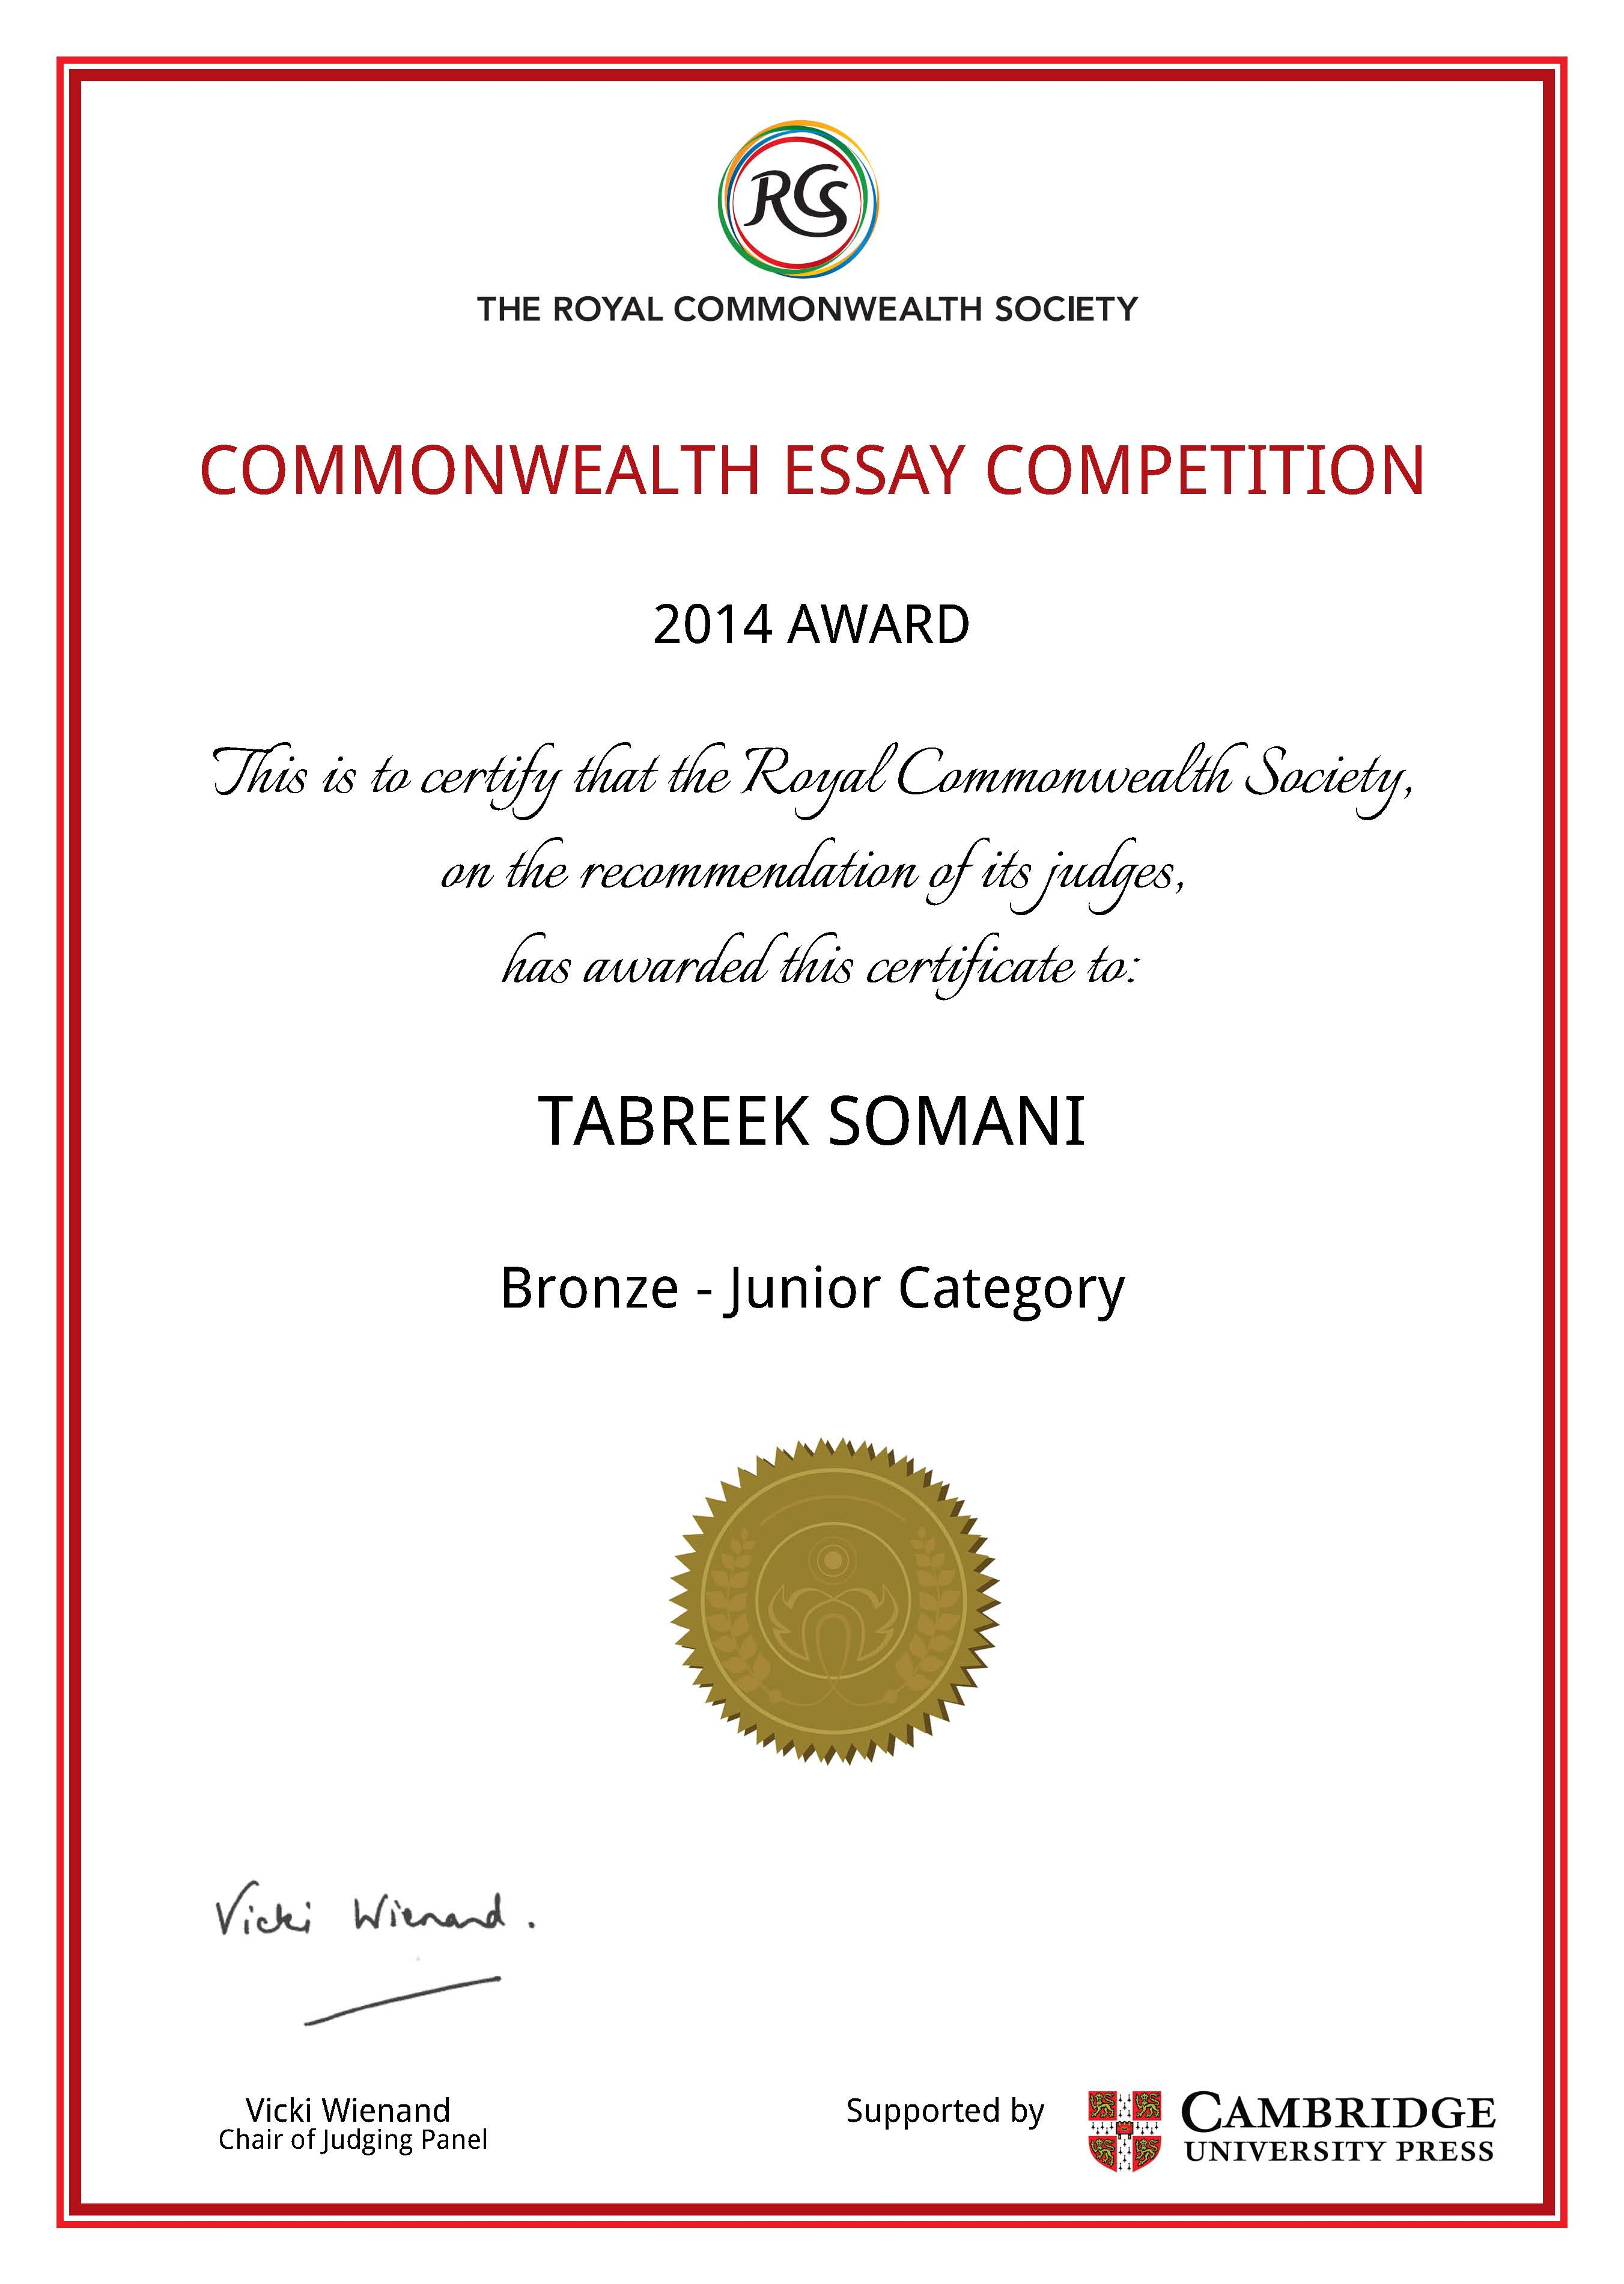 017 Certificate Ts Essay Example Contests Imposing 2014 Maryknoll Contest Winners Full